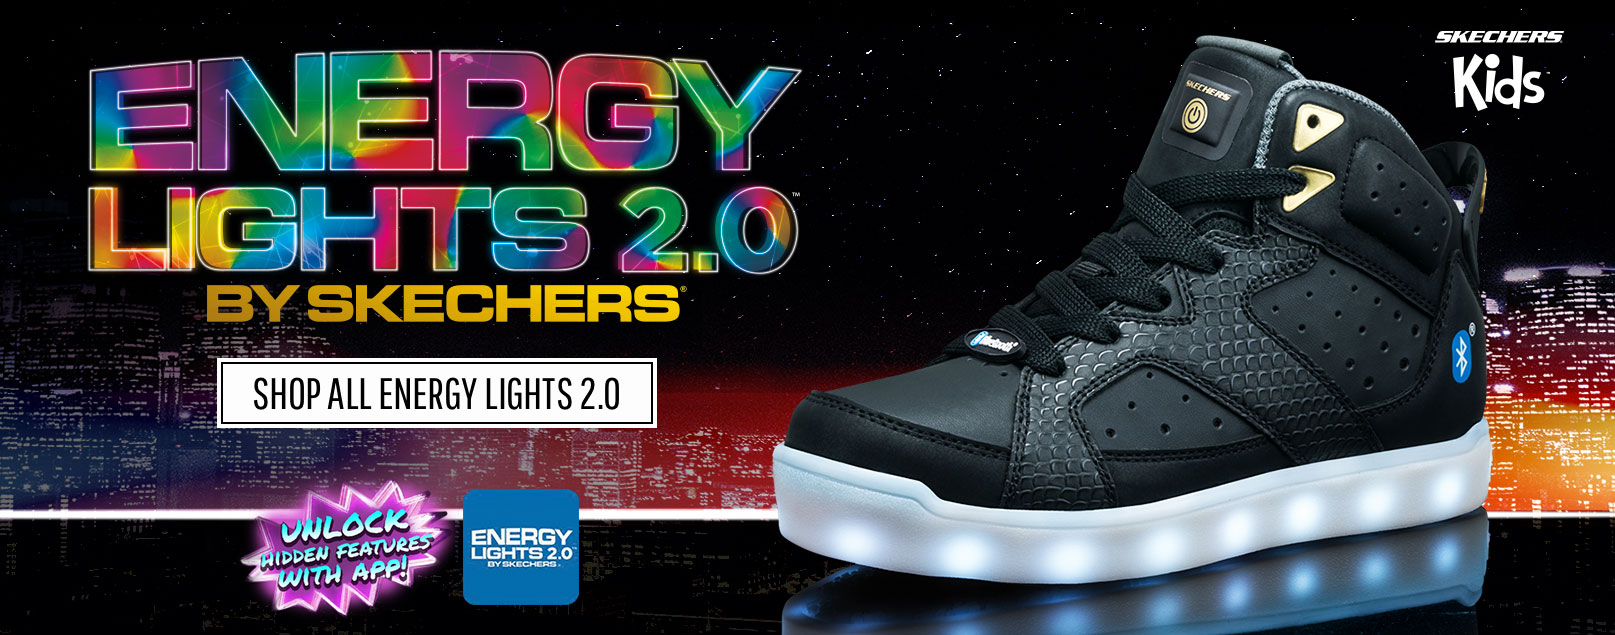 kechers takes lighted shoes into the future with the all new Energy Lights Bluetooth!  Control the colors and sequences, sync your shoes to your music, and lots more with the free Energy Lights app!